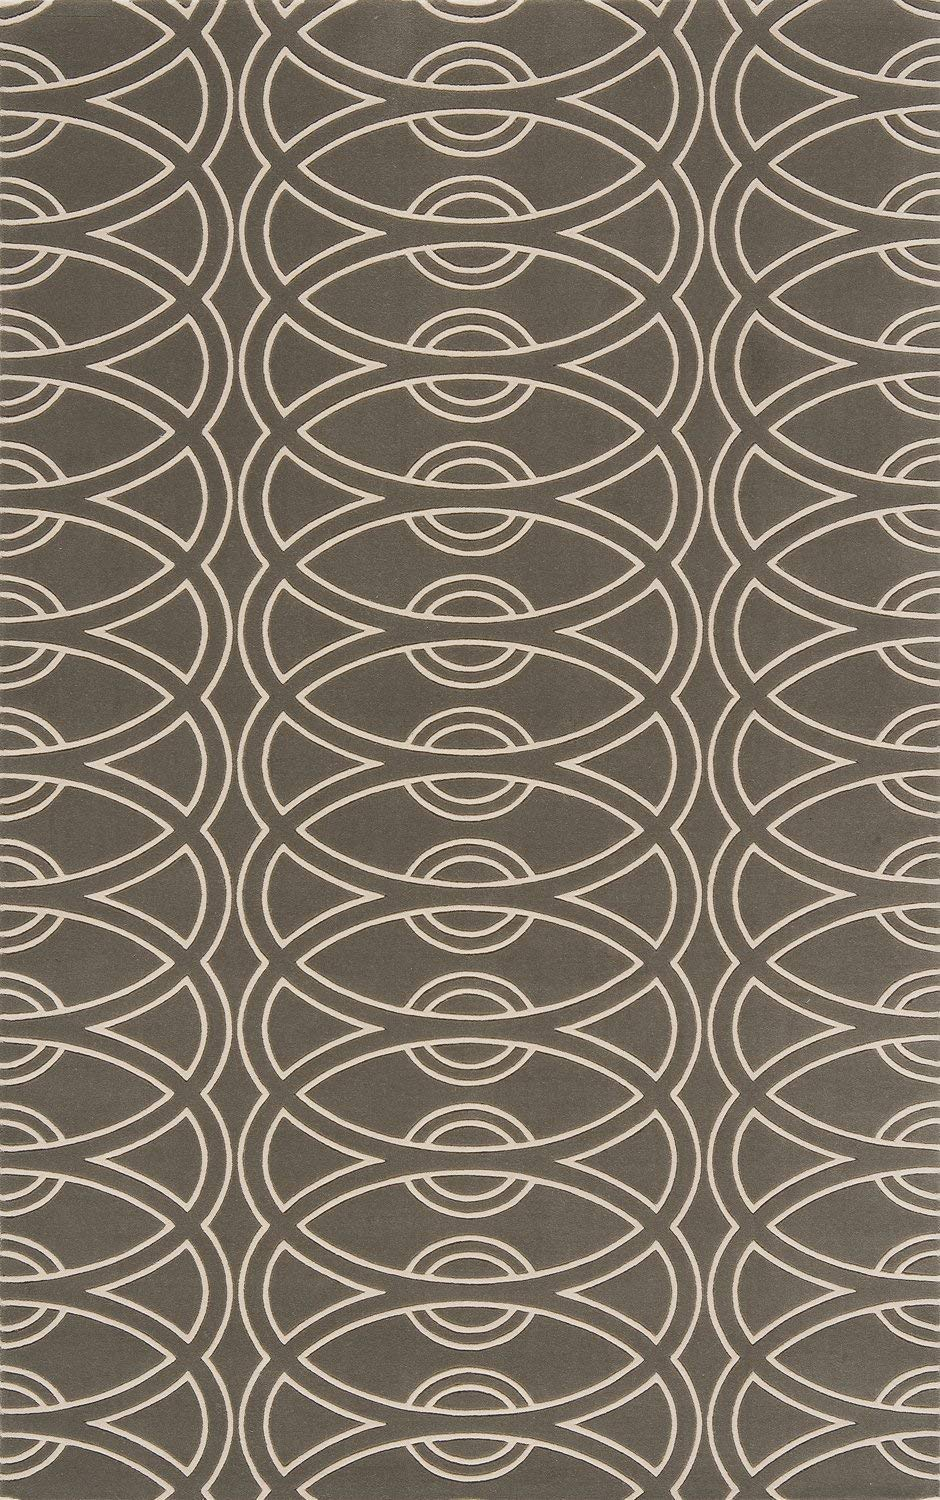 Grey 100/% New Zealand Wool Hand Carved Contemporary Area Rug Momeni Rugs ELEMTEL-29GRY3050 Elements Collection 3 x 5